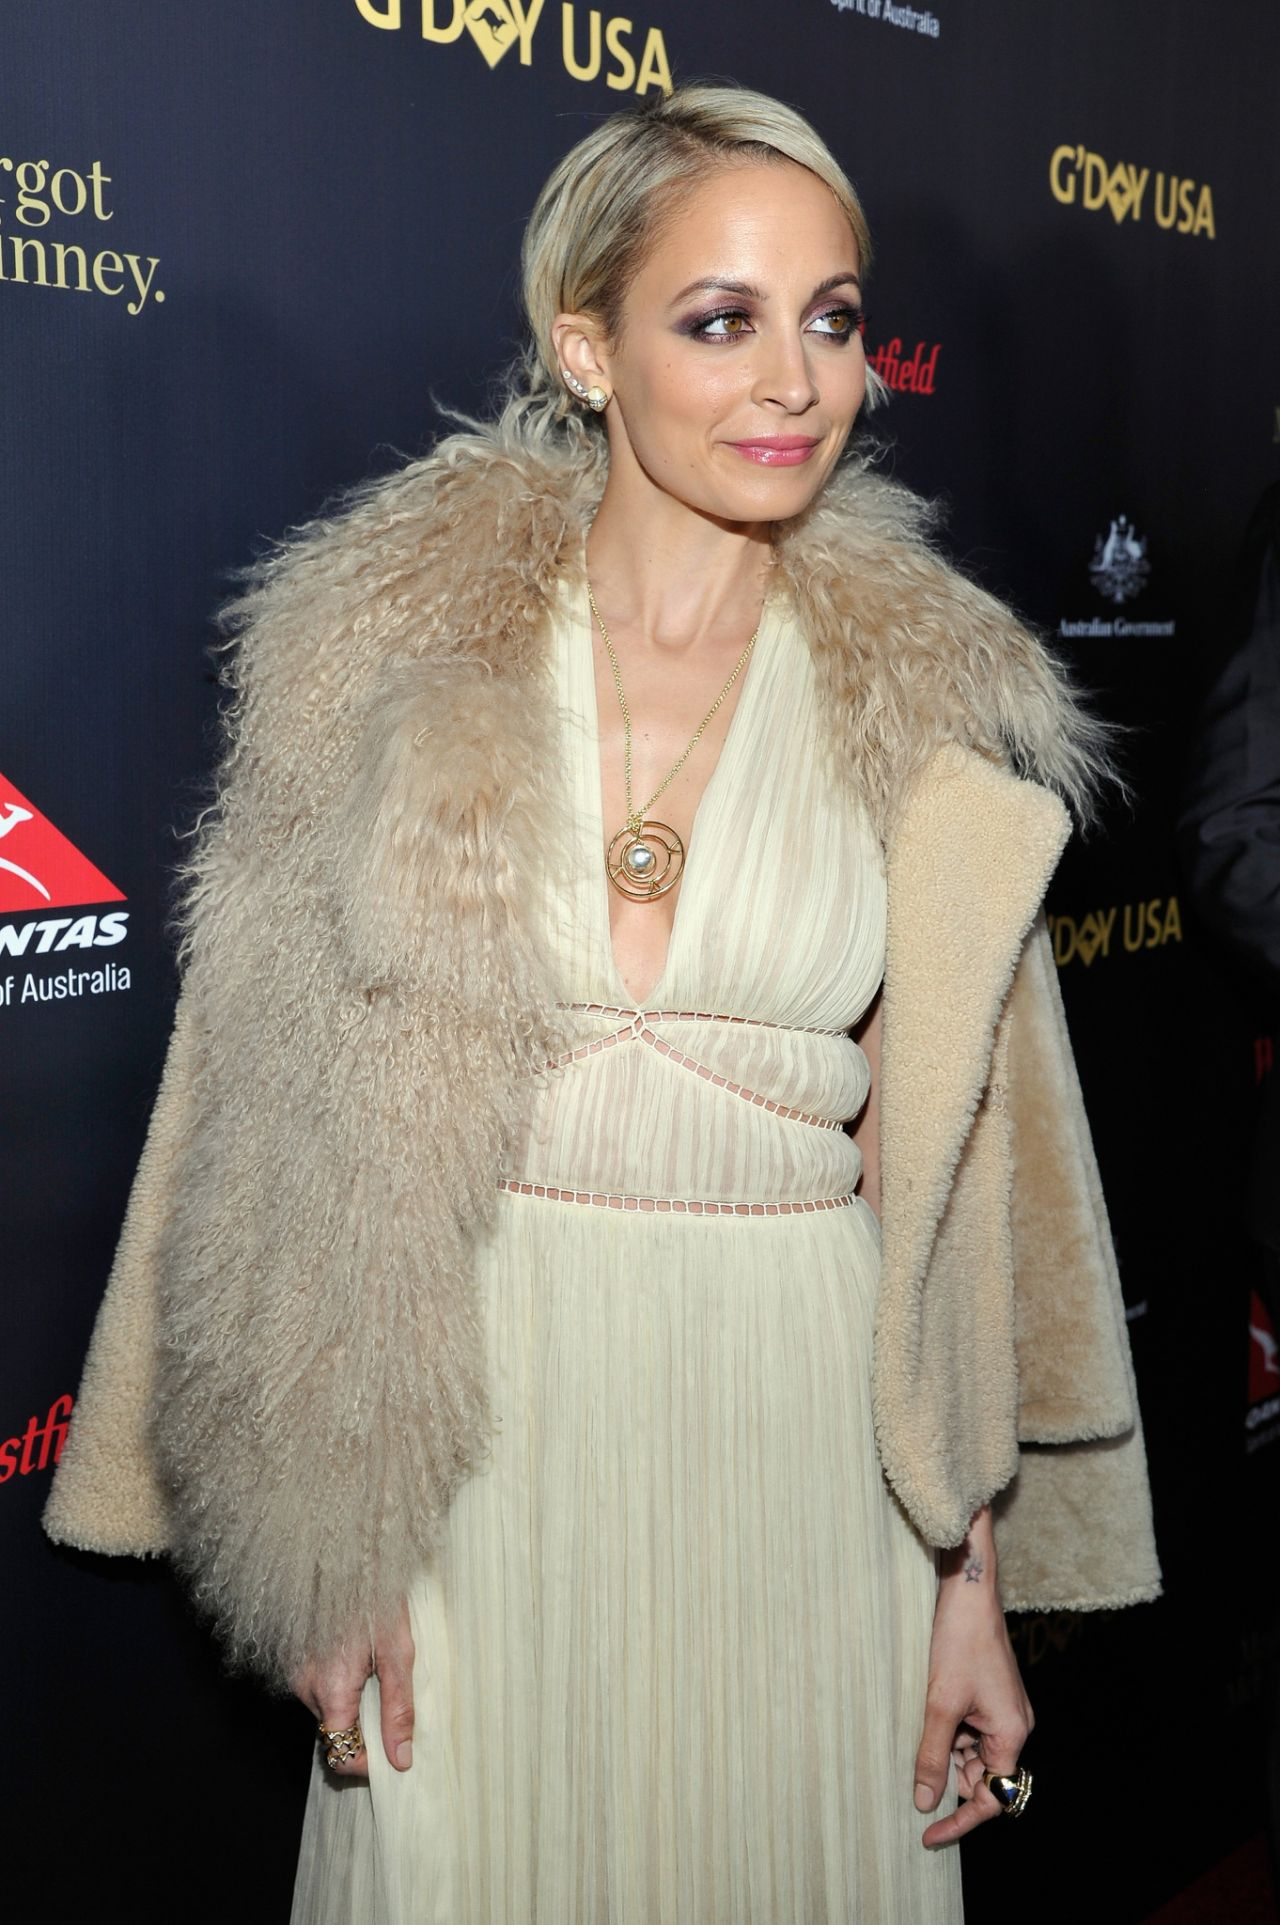 nicole-richie-2016-g-day-los-angeles-gala-in-los-angeles-10